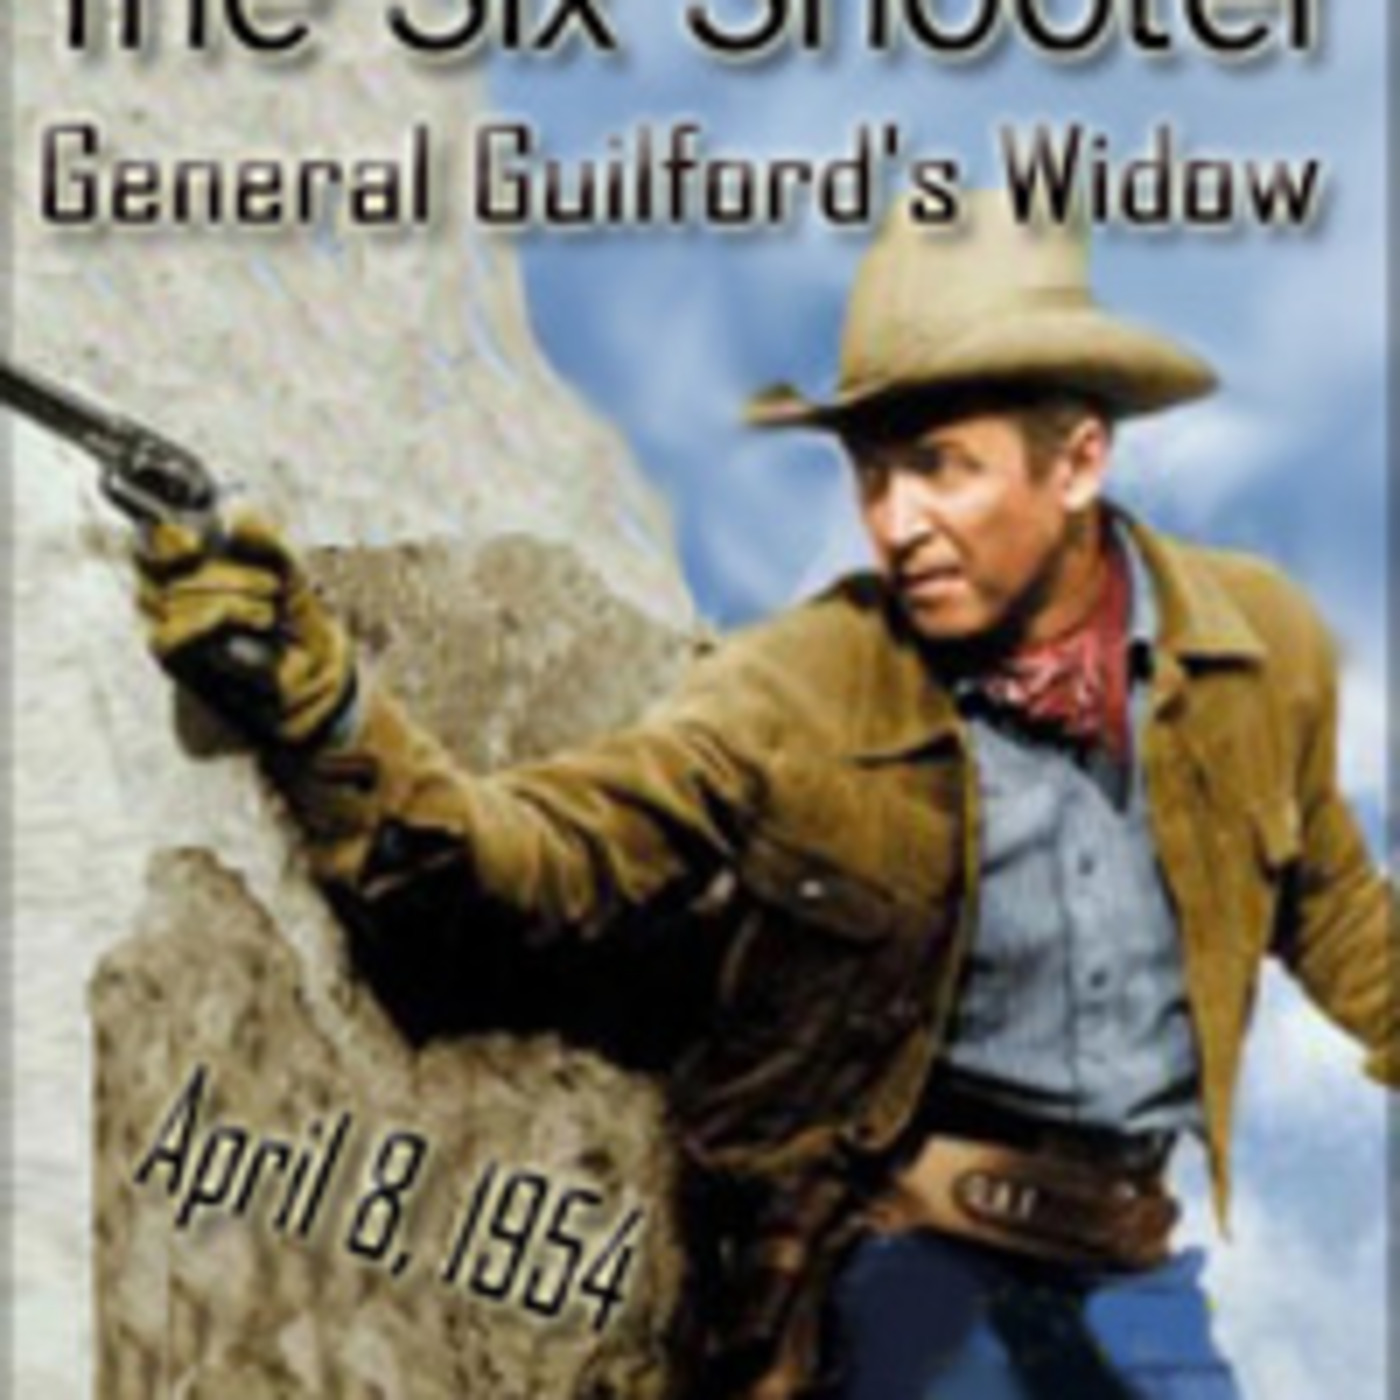 """Boxcars711 Overnight Western """"The Six Shooter"""" - General Guilford's Widow (04-08-54)"""